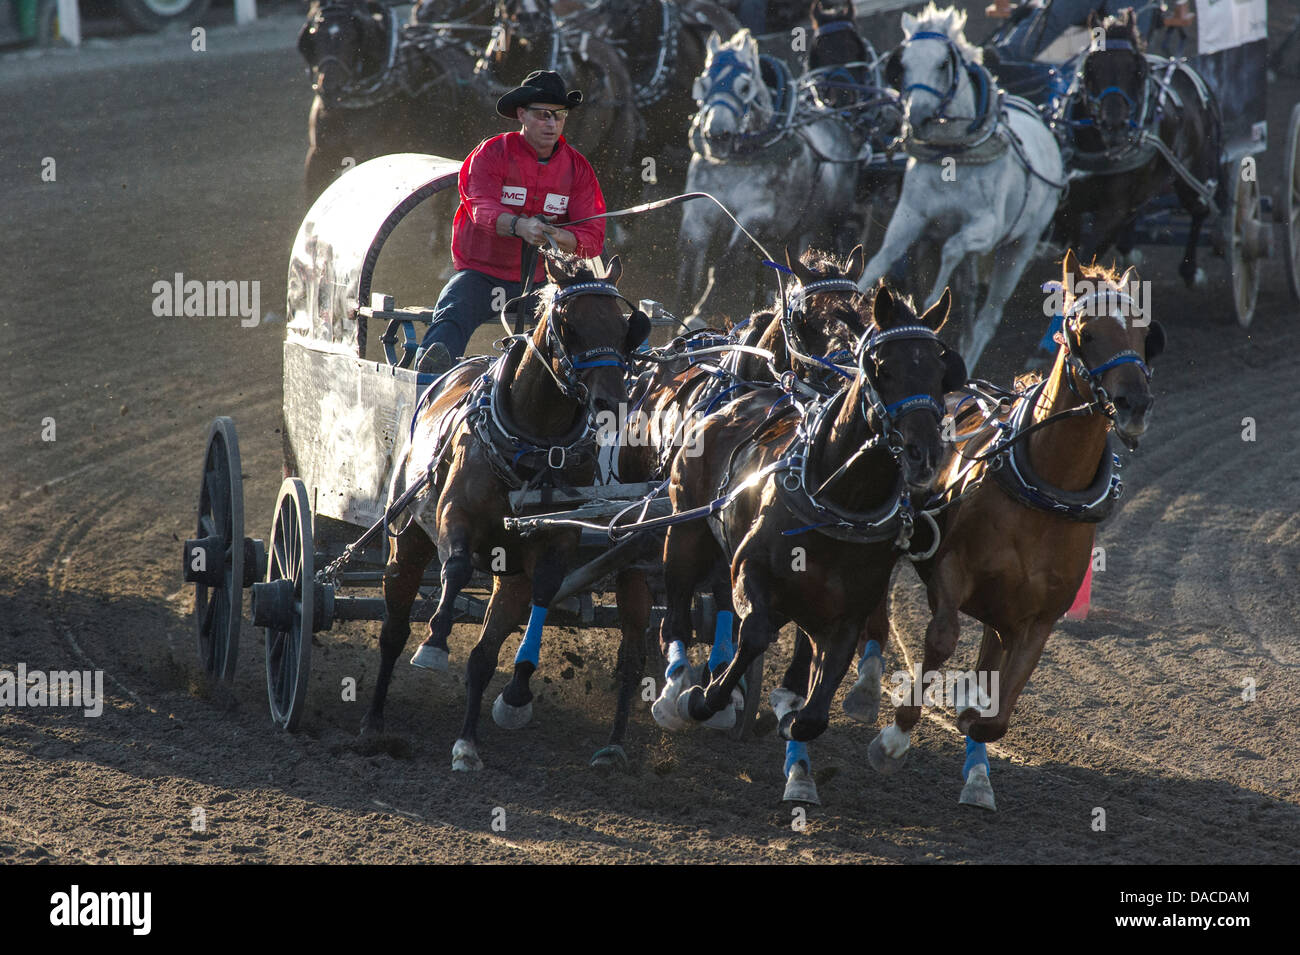 chuckwagon-race-at-the-calgary-stampede-DACDAM.jpg